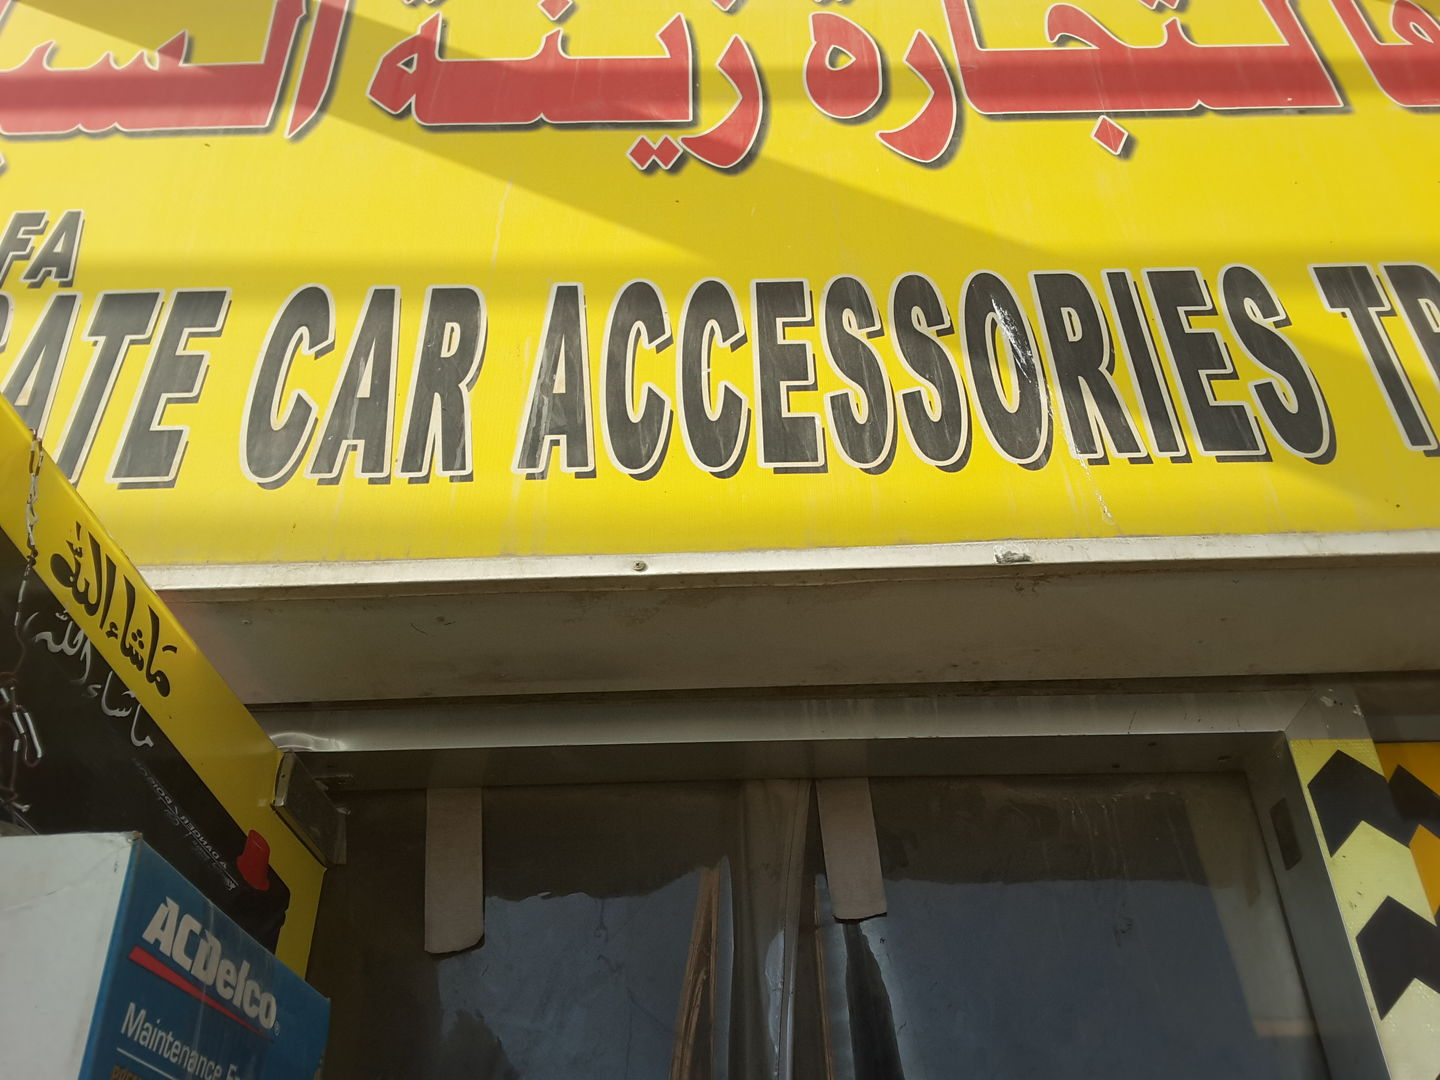 HiDubai-business-bab-al-safa-car-accessories-and-upholstery-b2b-services-distributors-wholesalers-al-quoz-3-dubai-2